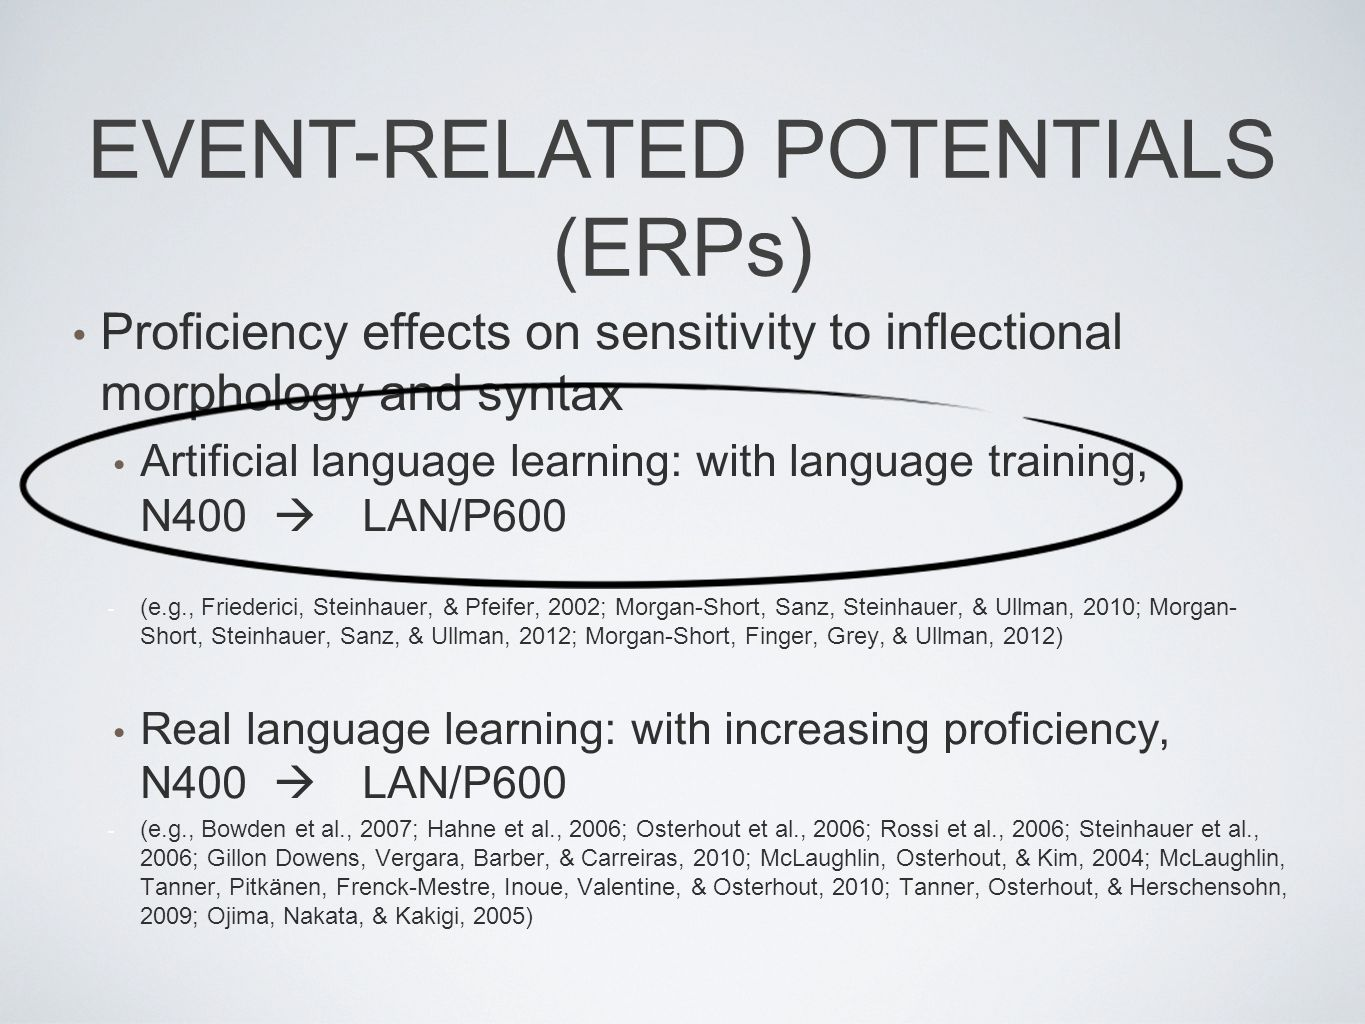 EVENT-RELATED POTENTIALS (ERPs)